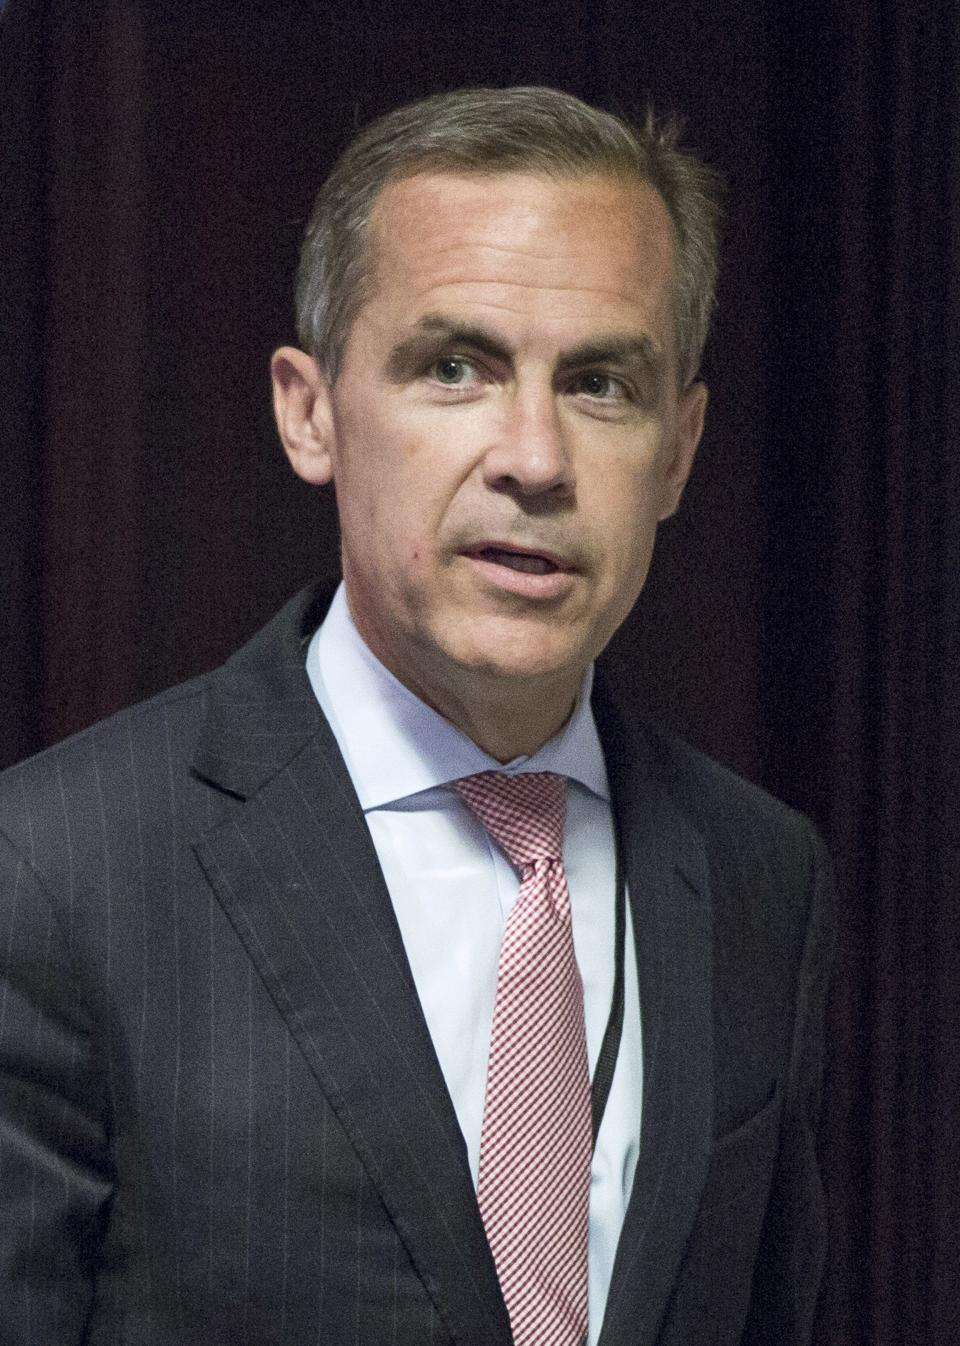 Mark Carney, the new Governor of the Bank of England, arrives to attend a monetary policy committee (MPC) briefing on his first day on the job inside the central bank's headquarters in London Monday July 1, 2013. (AP Photo/Jason Alden/Pool)